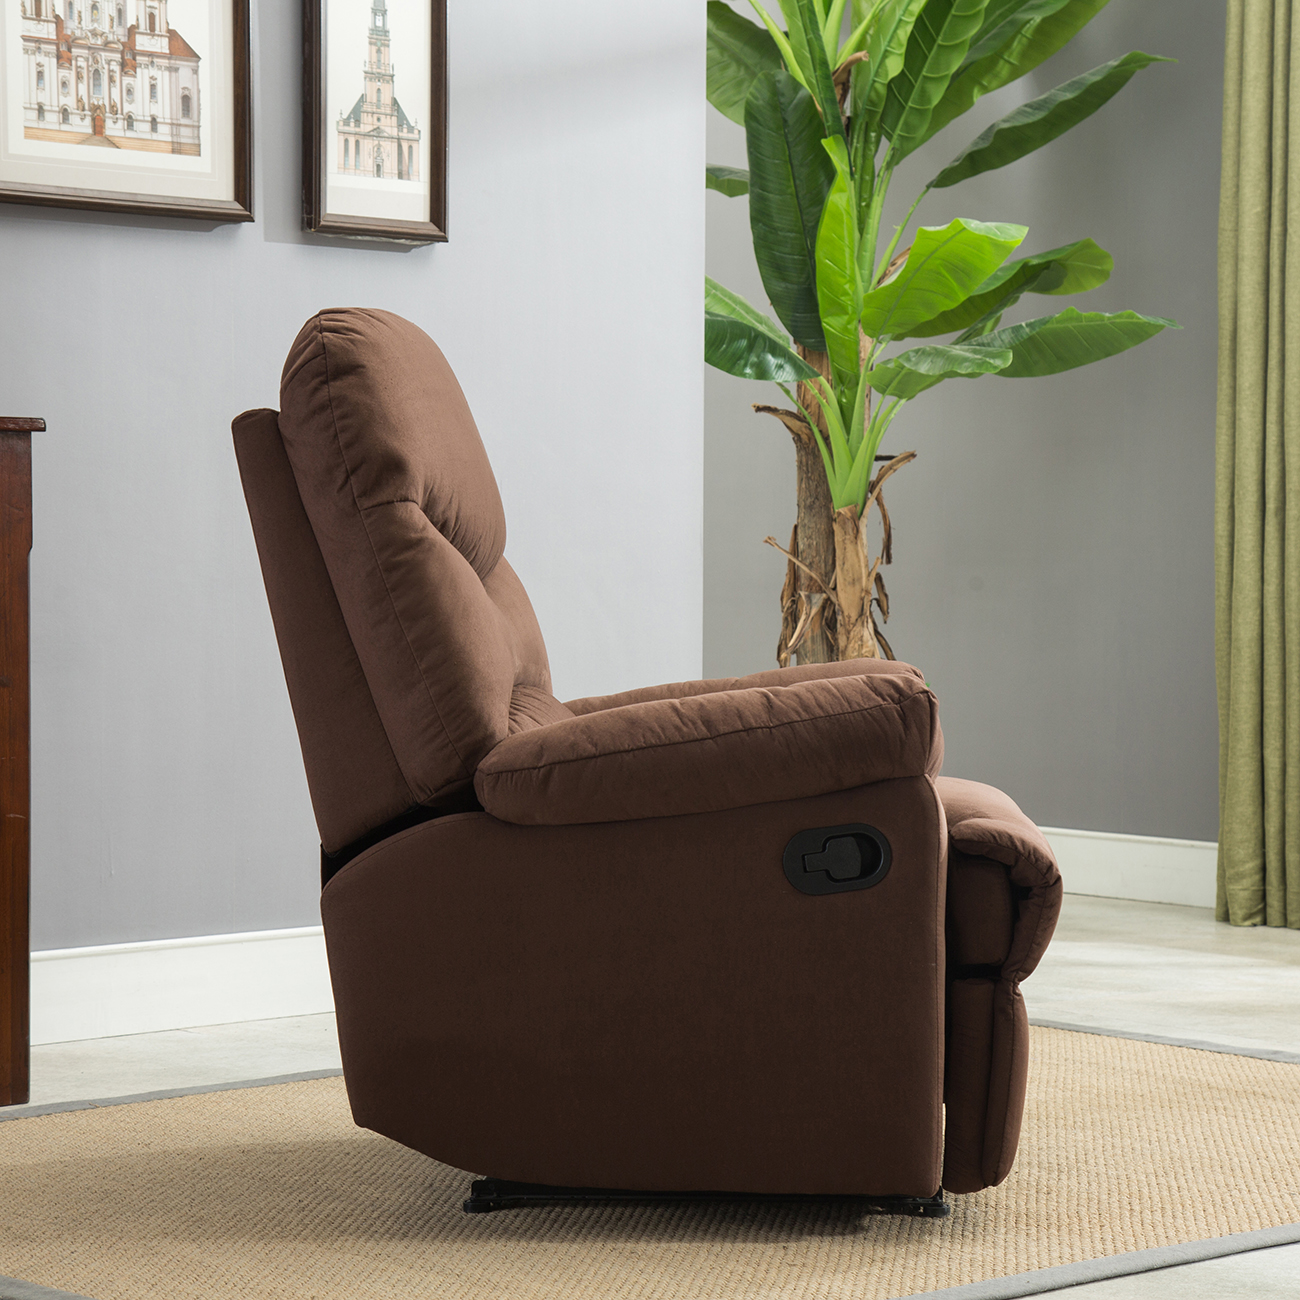 Furniture Living Room Seating Recliners Beige